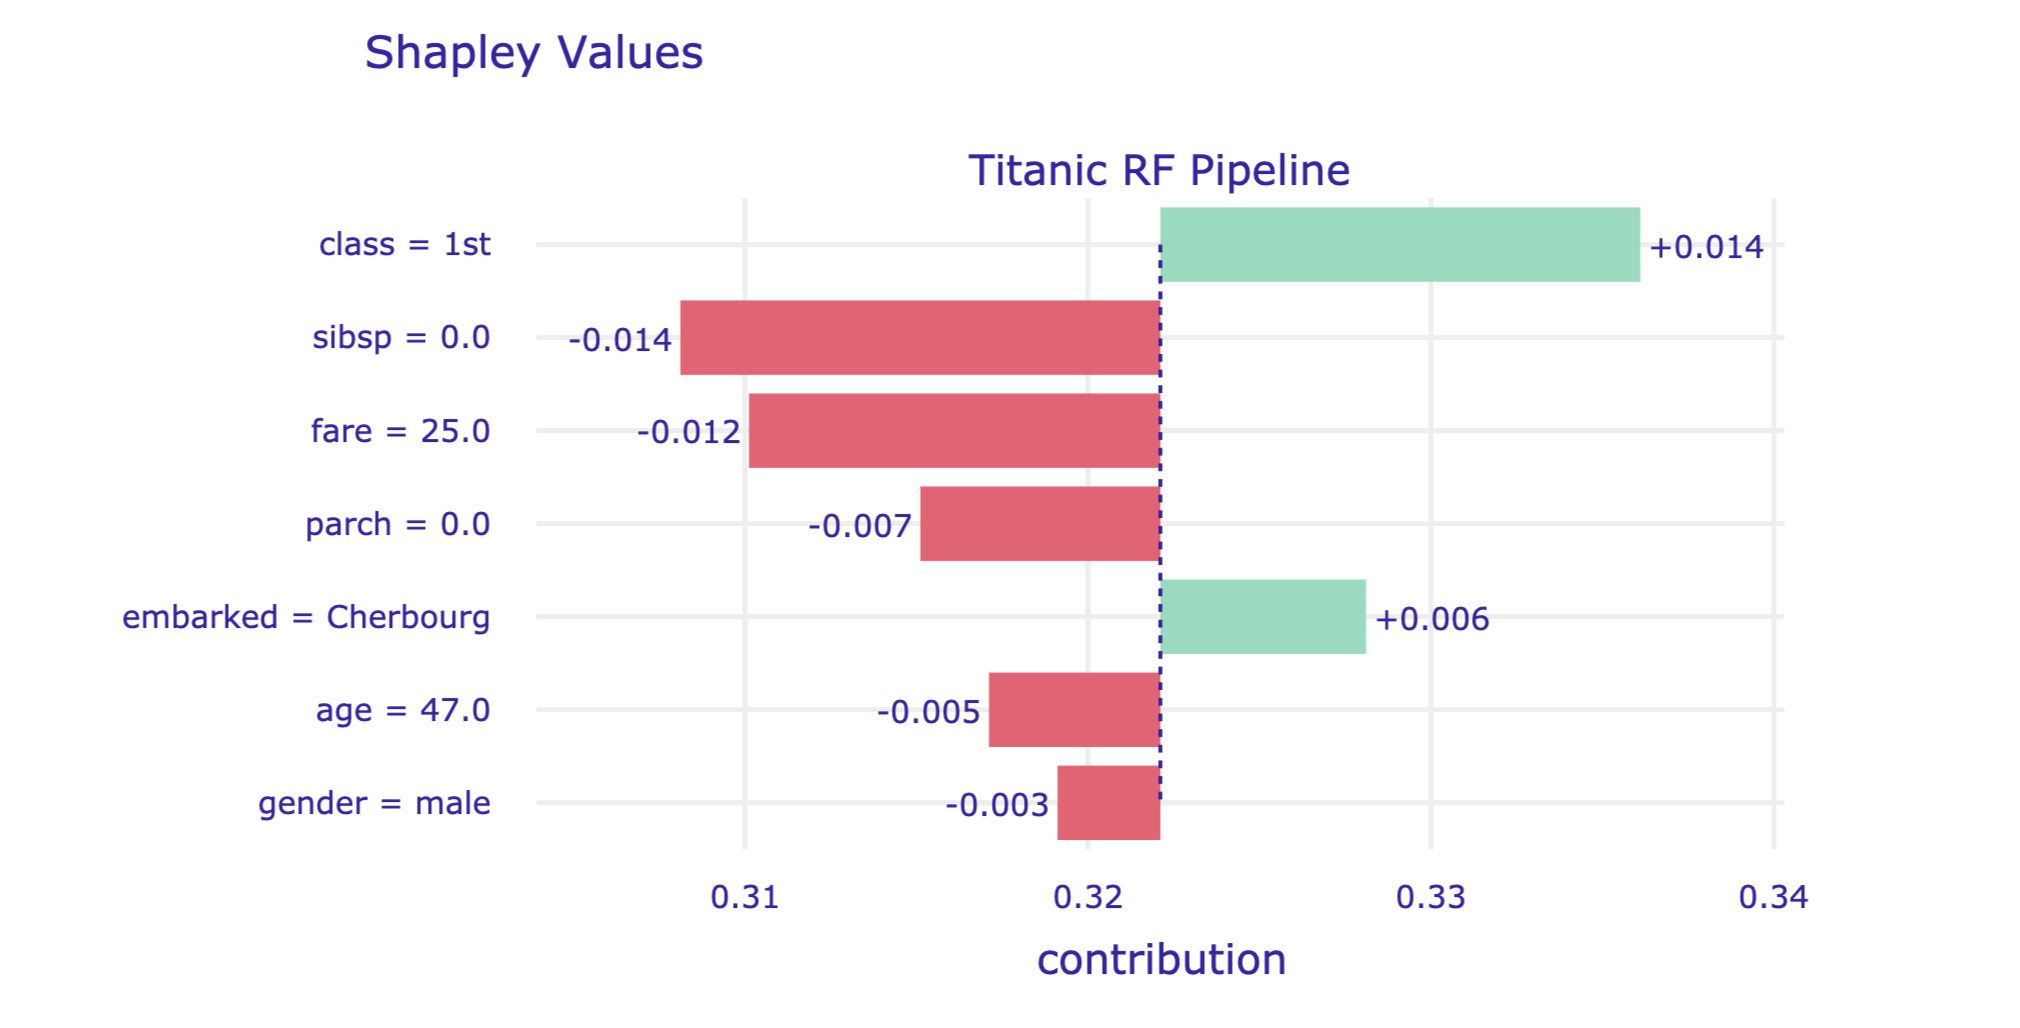 A plot of Shapley values for the titanic_rf model and passenger Henry for the Titanic data, obtained by applying the plot() method in Python.